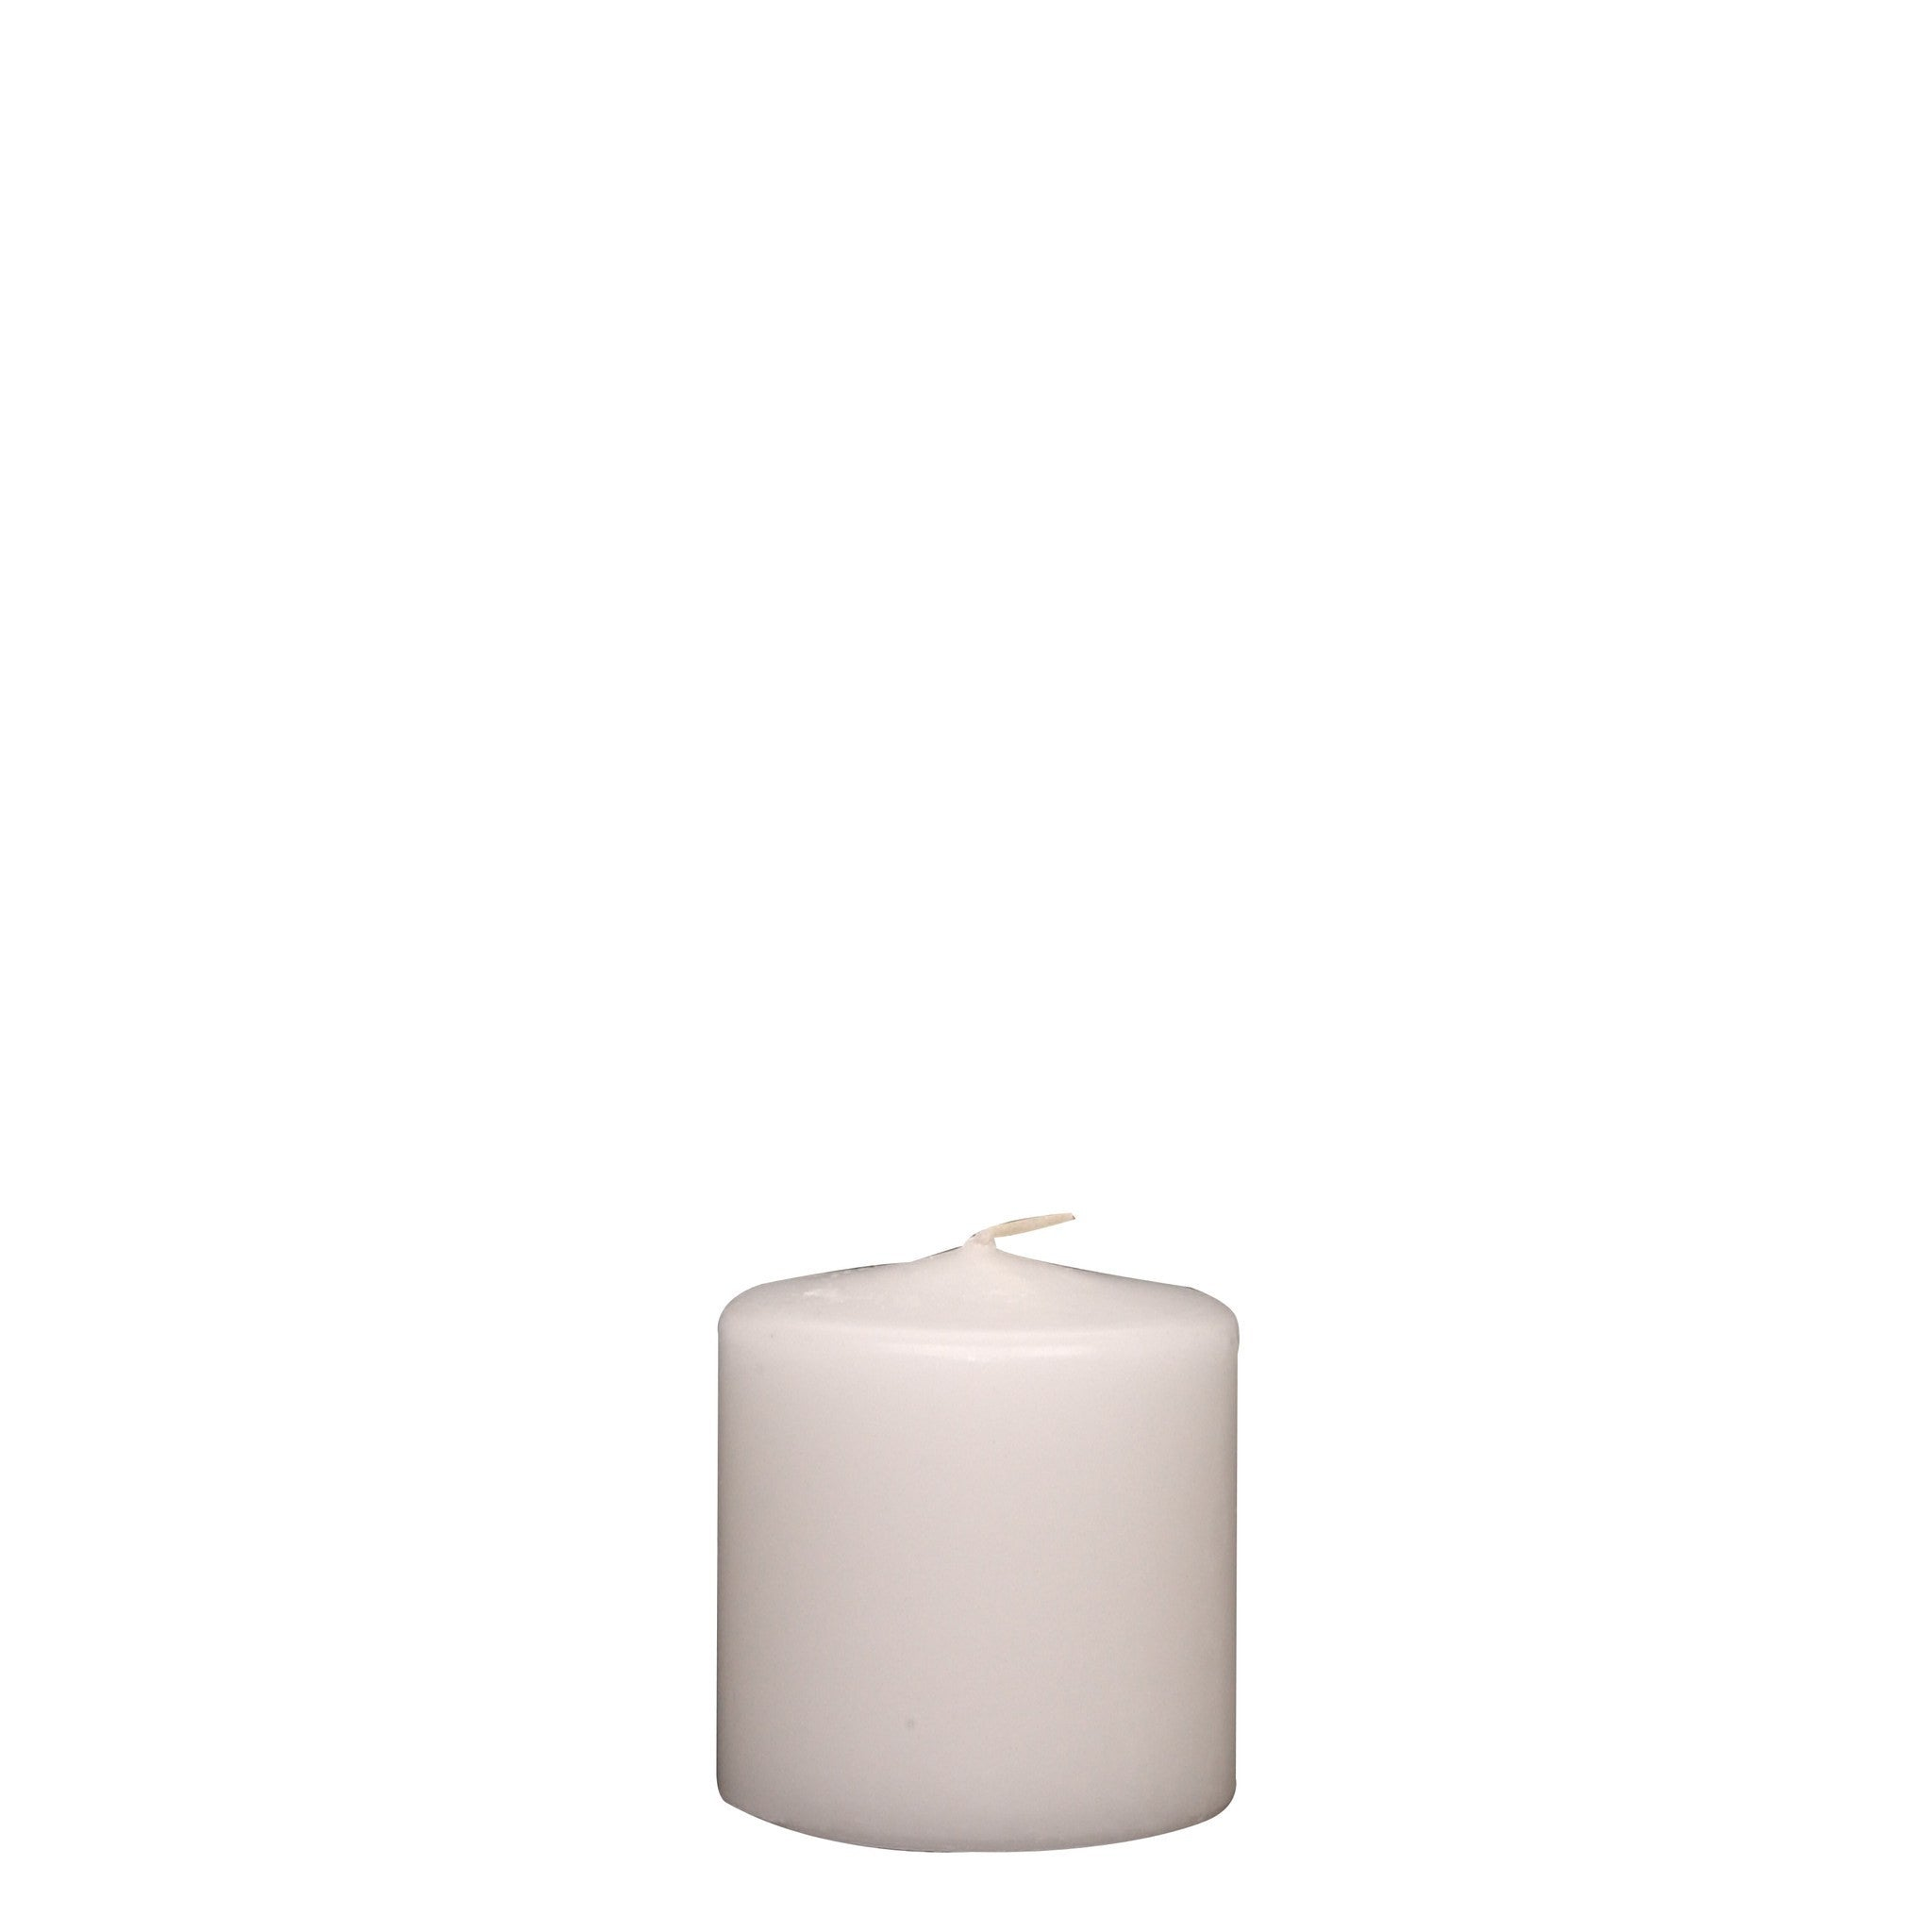 3x3 Unscented White Pillar Candle - Candlemart.com - 2